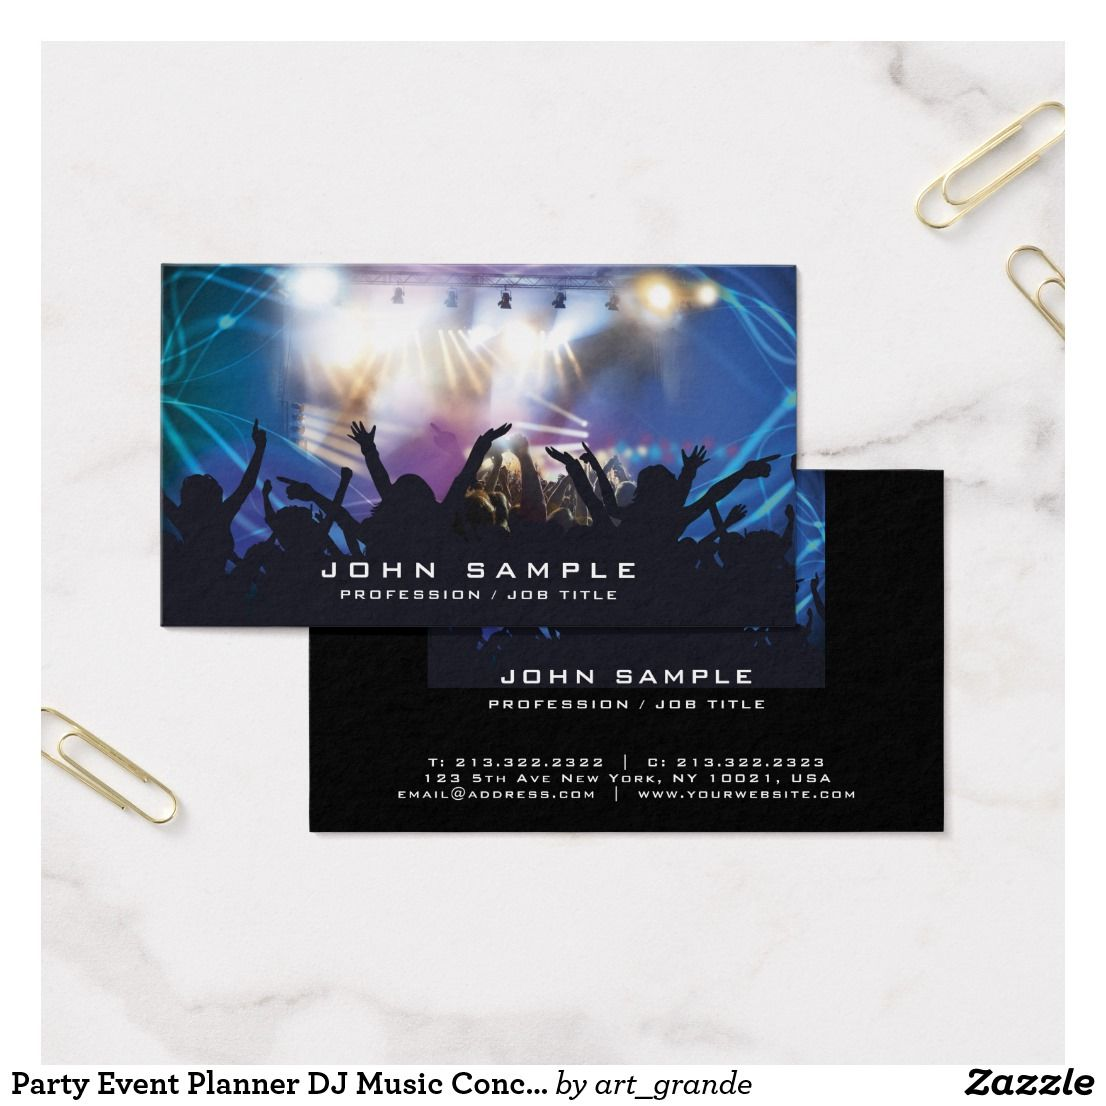 Party Event Planner DJ Music Concert Disco Business Card